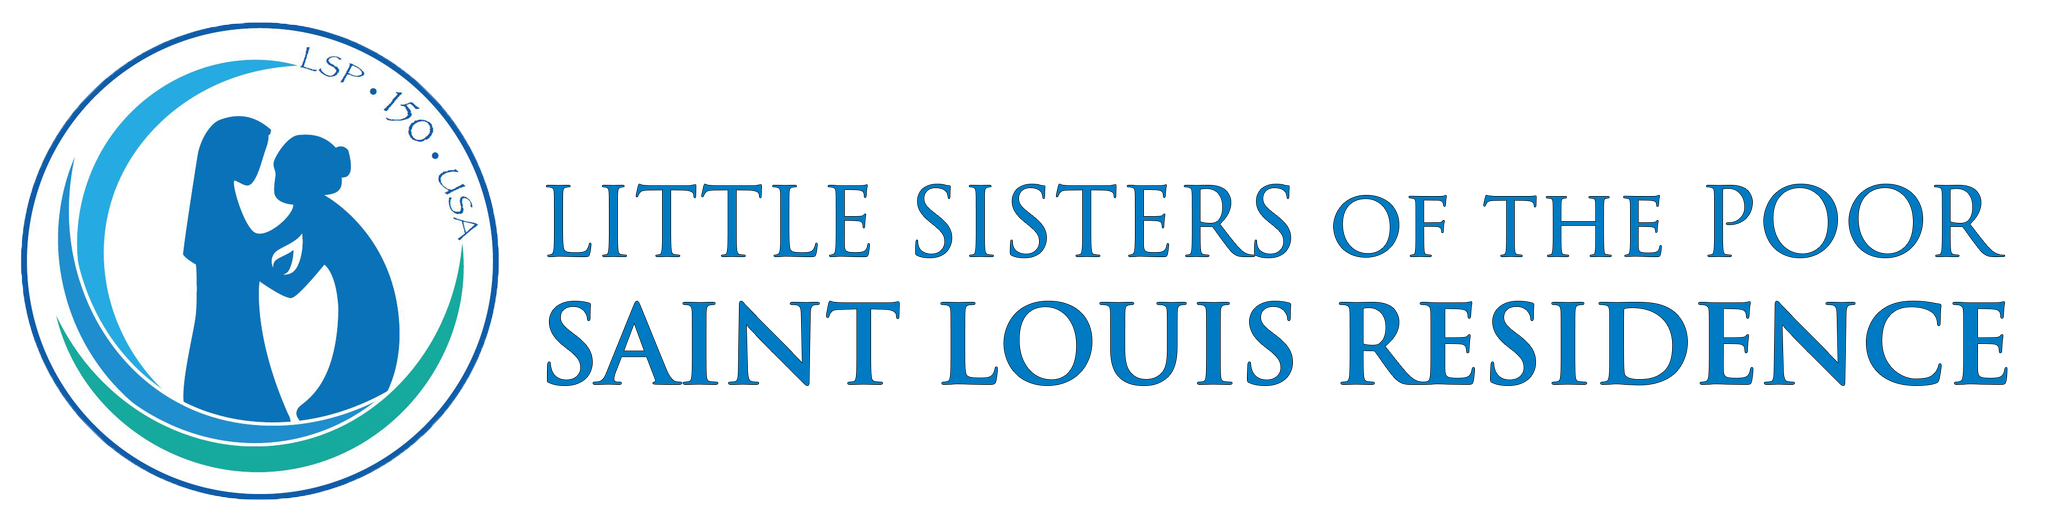 Little Sisters of the Poor St. Louis